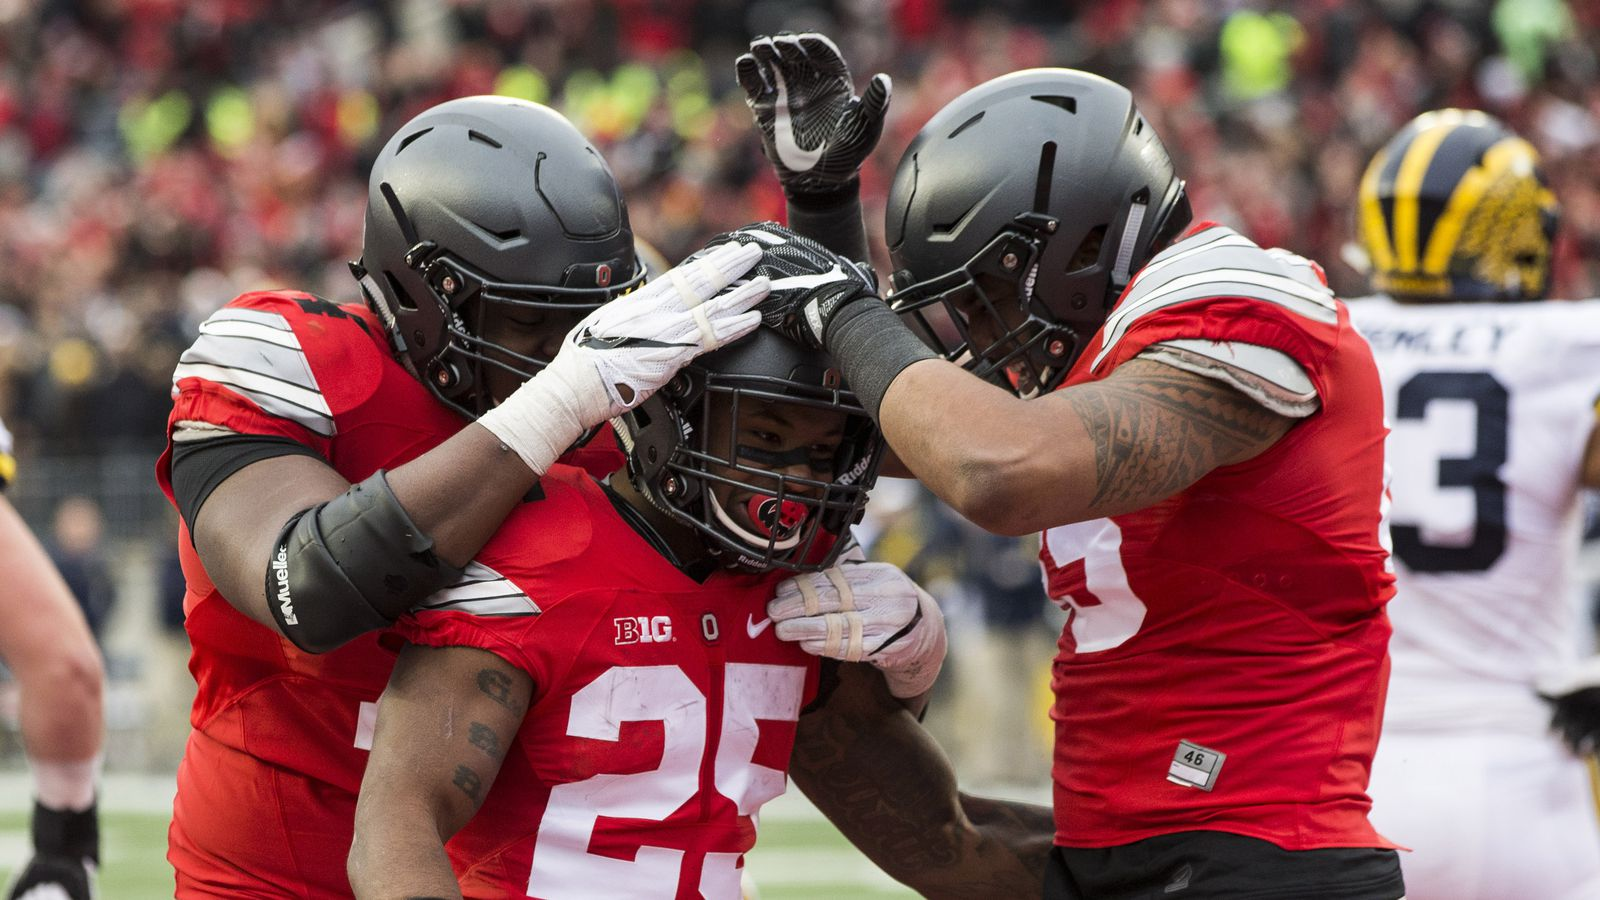 Michigan Vs Ohio State Final Score And Highlights Osu